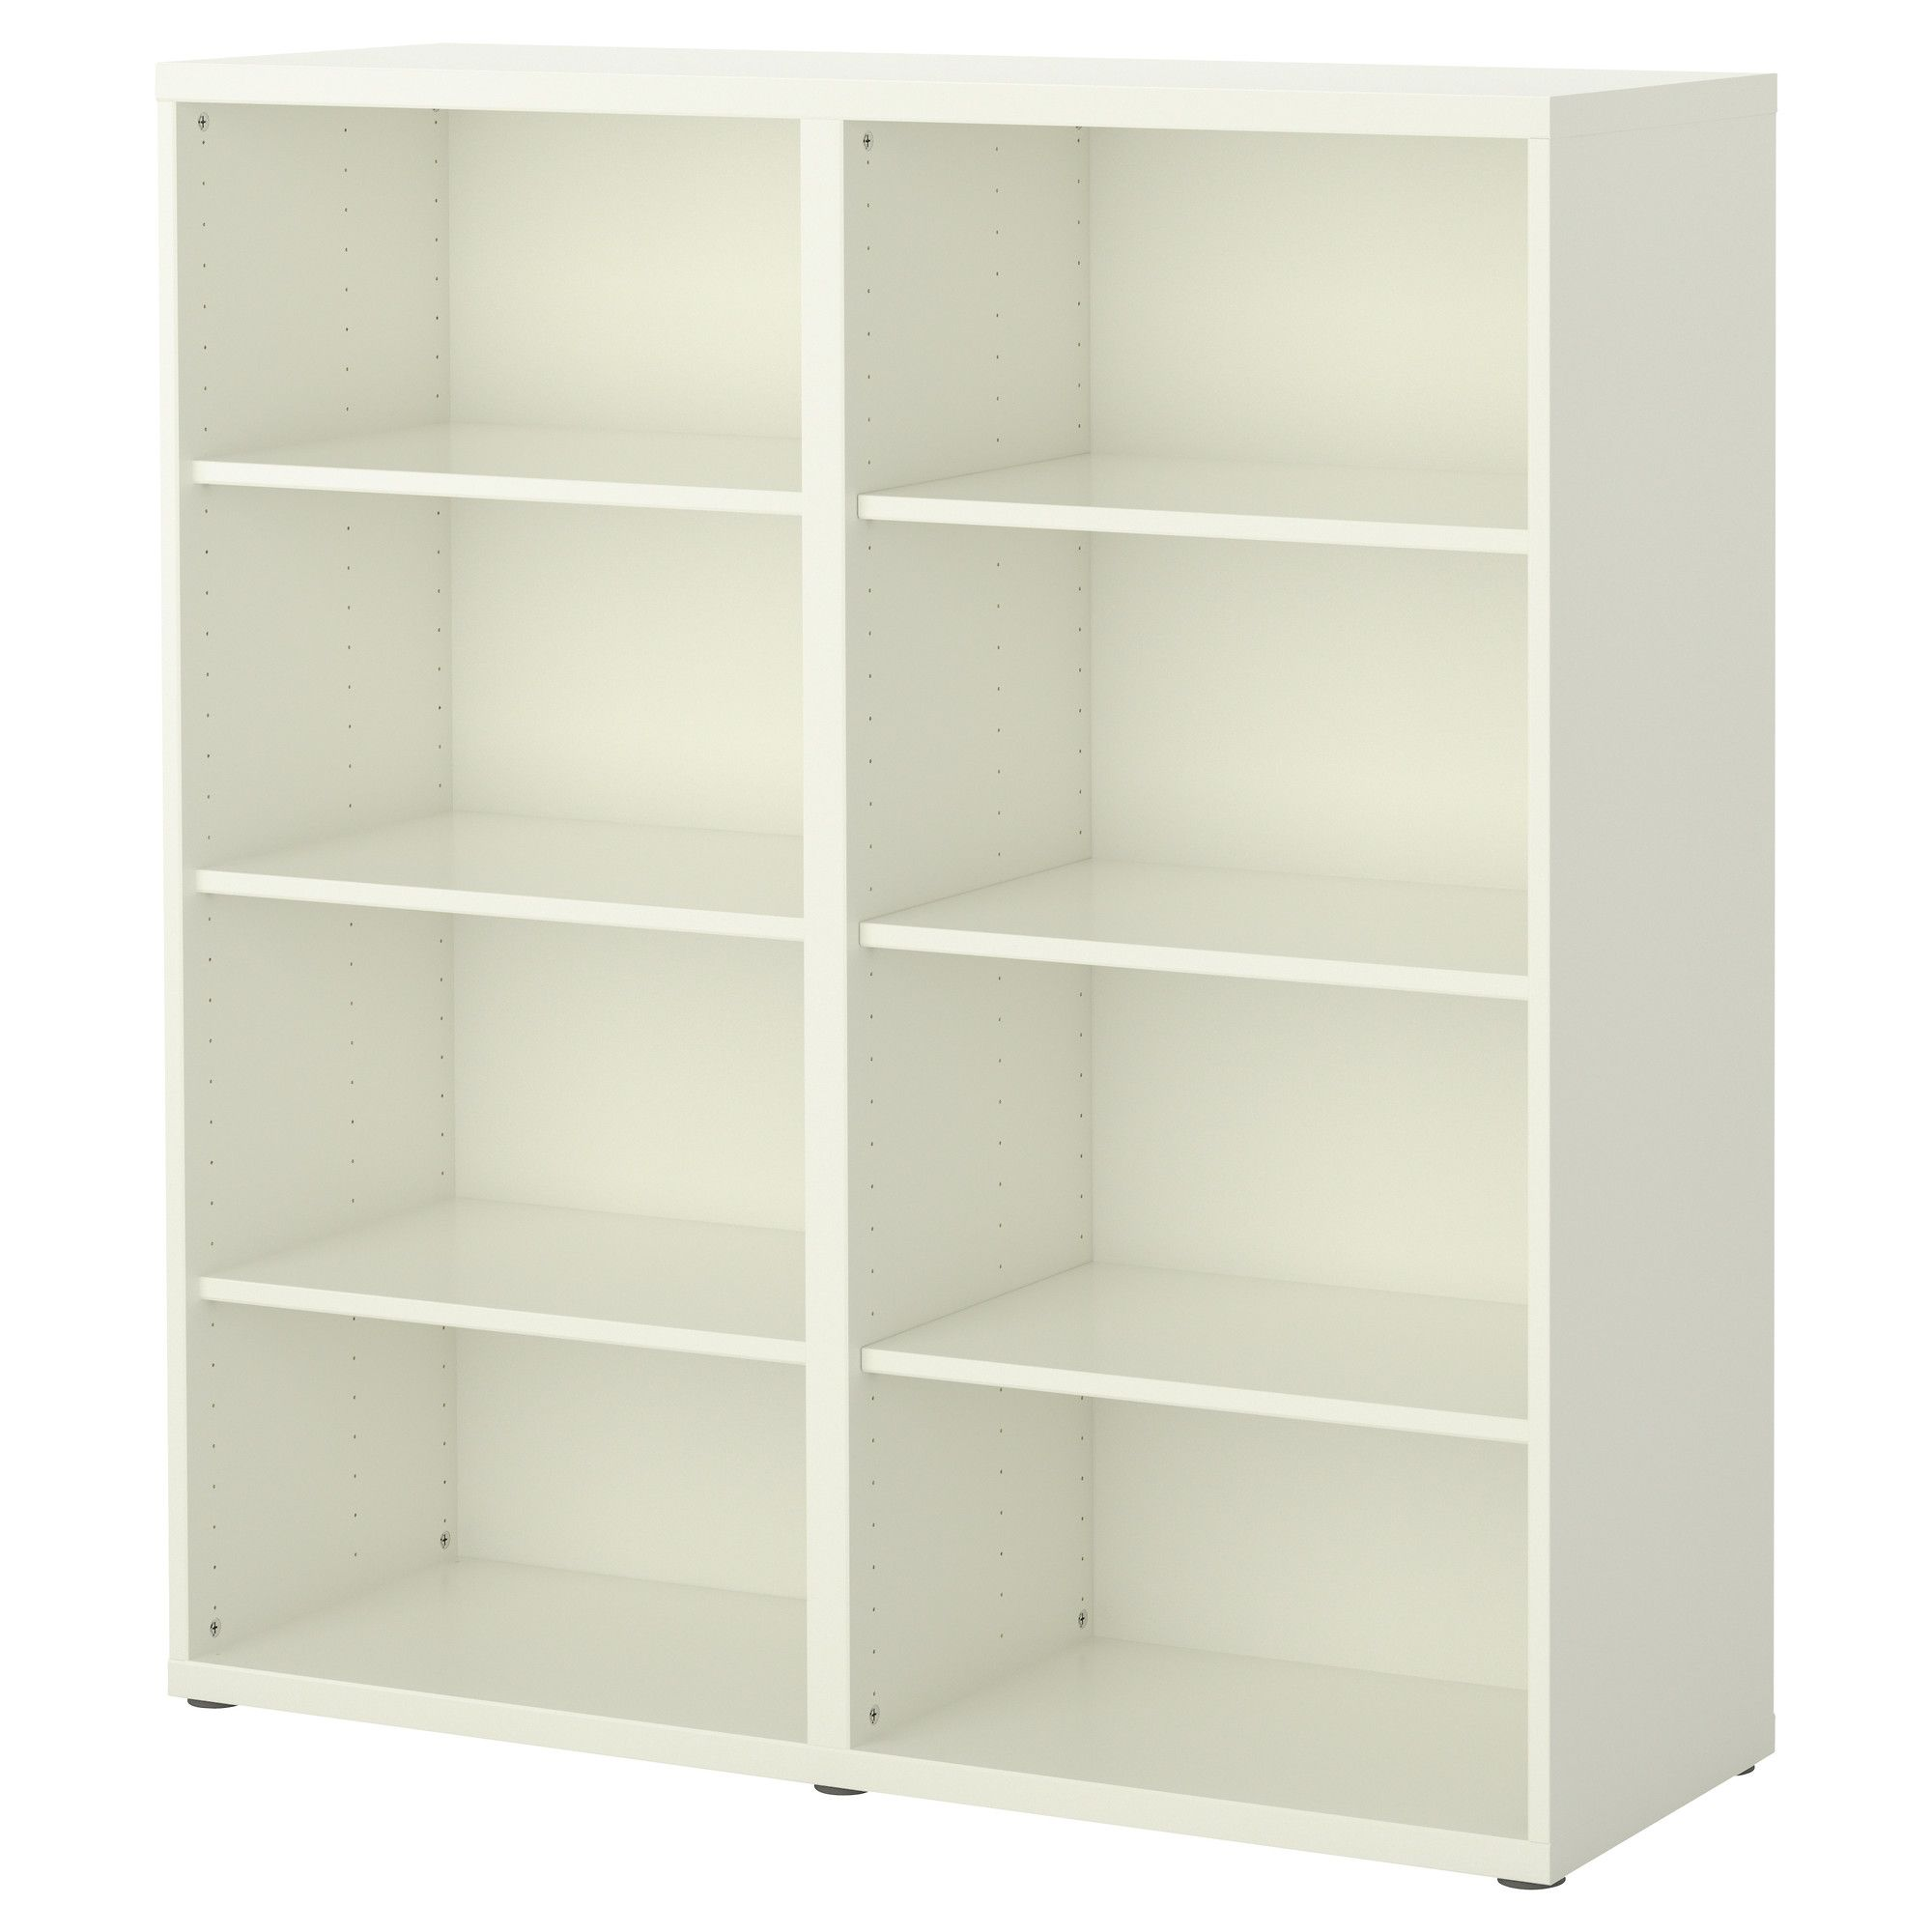 BEST… Shelf unit white IKEA STUDIOsity Pinterest